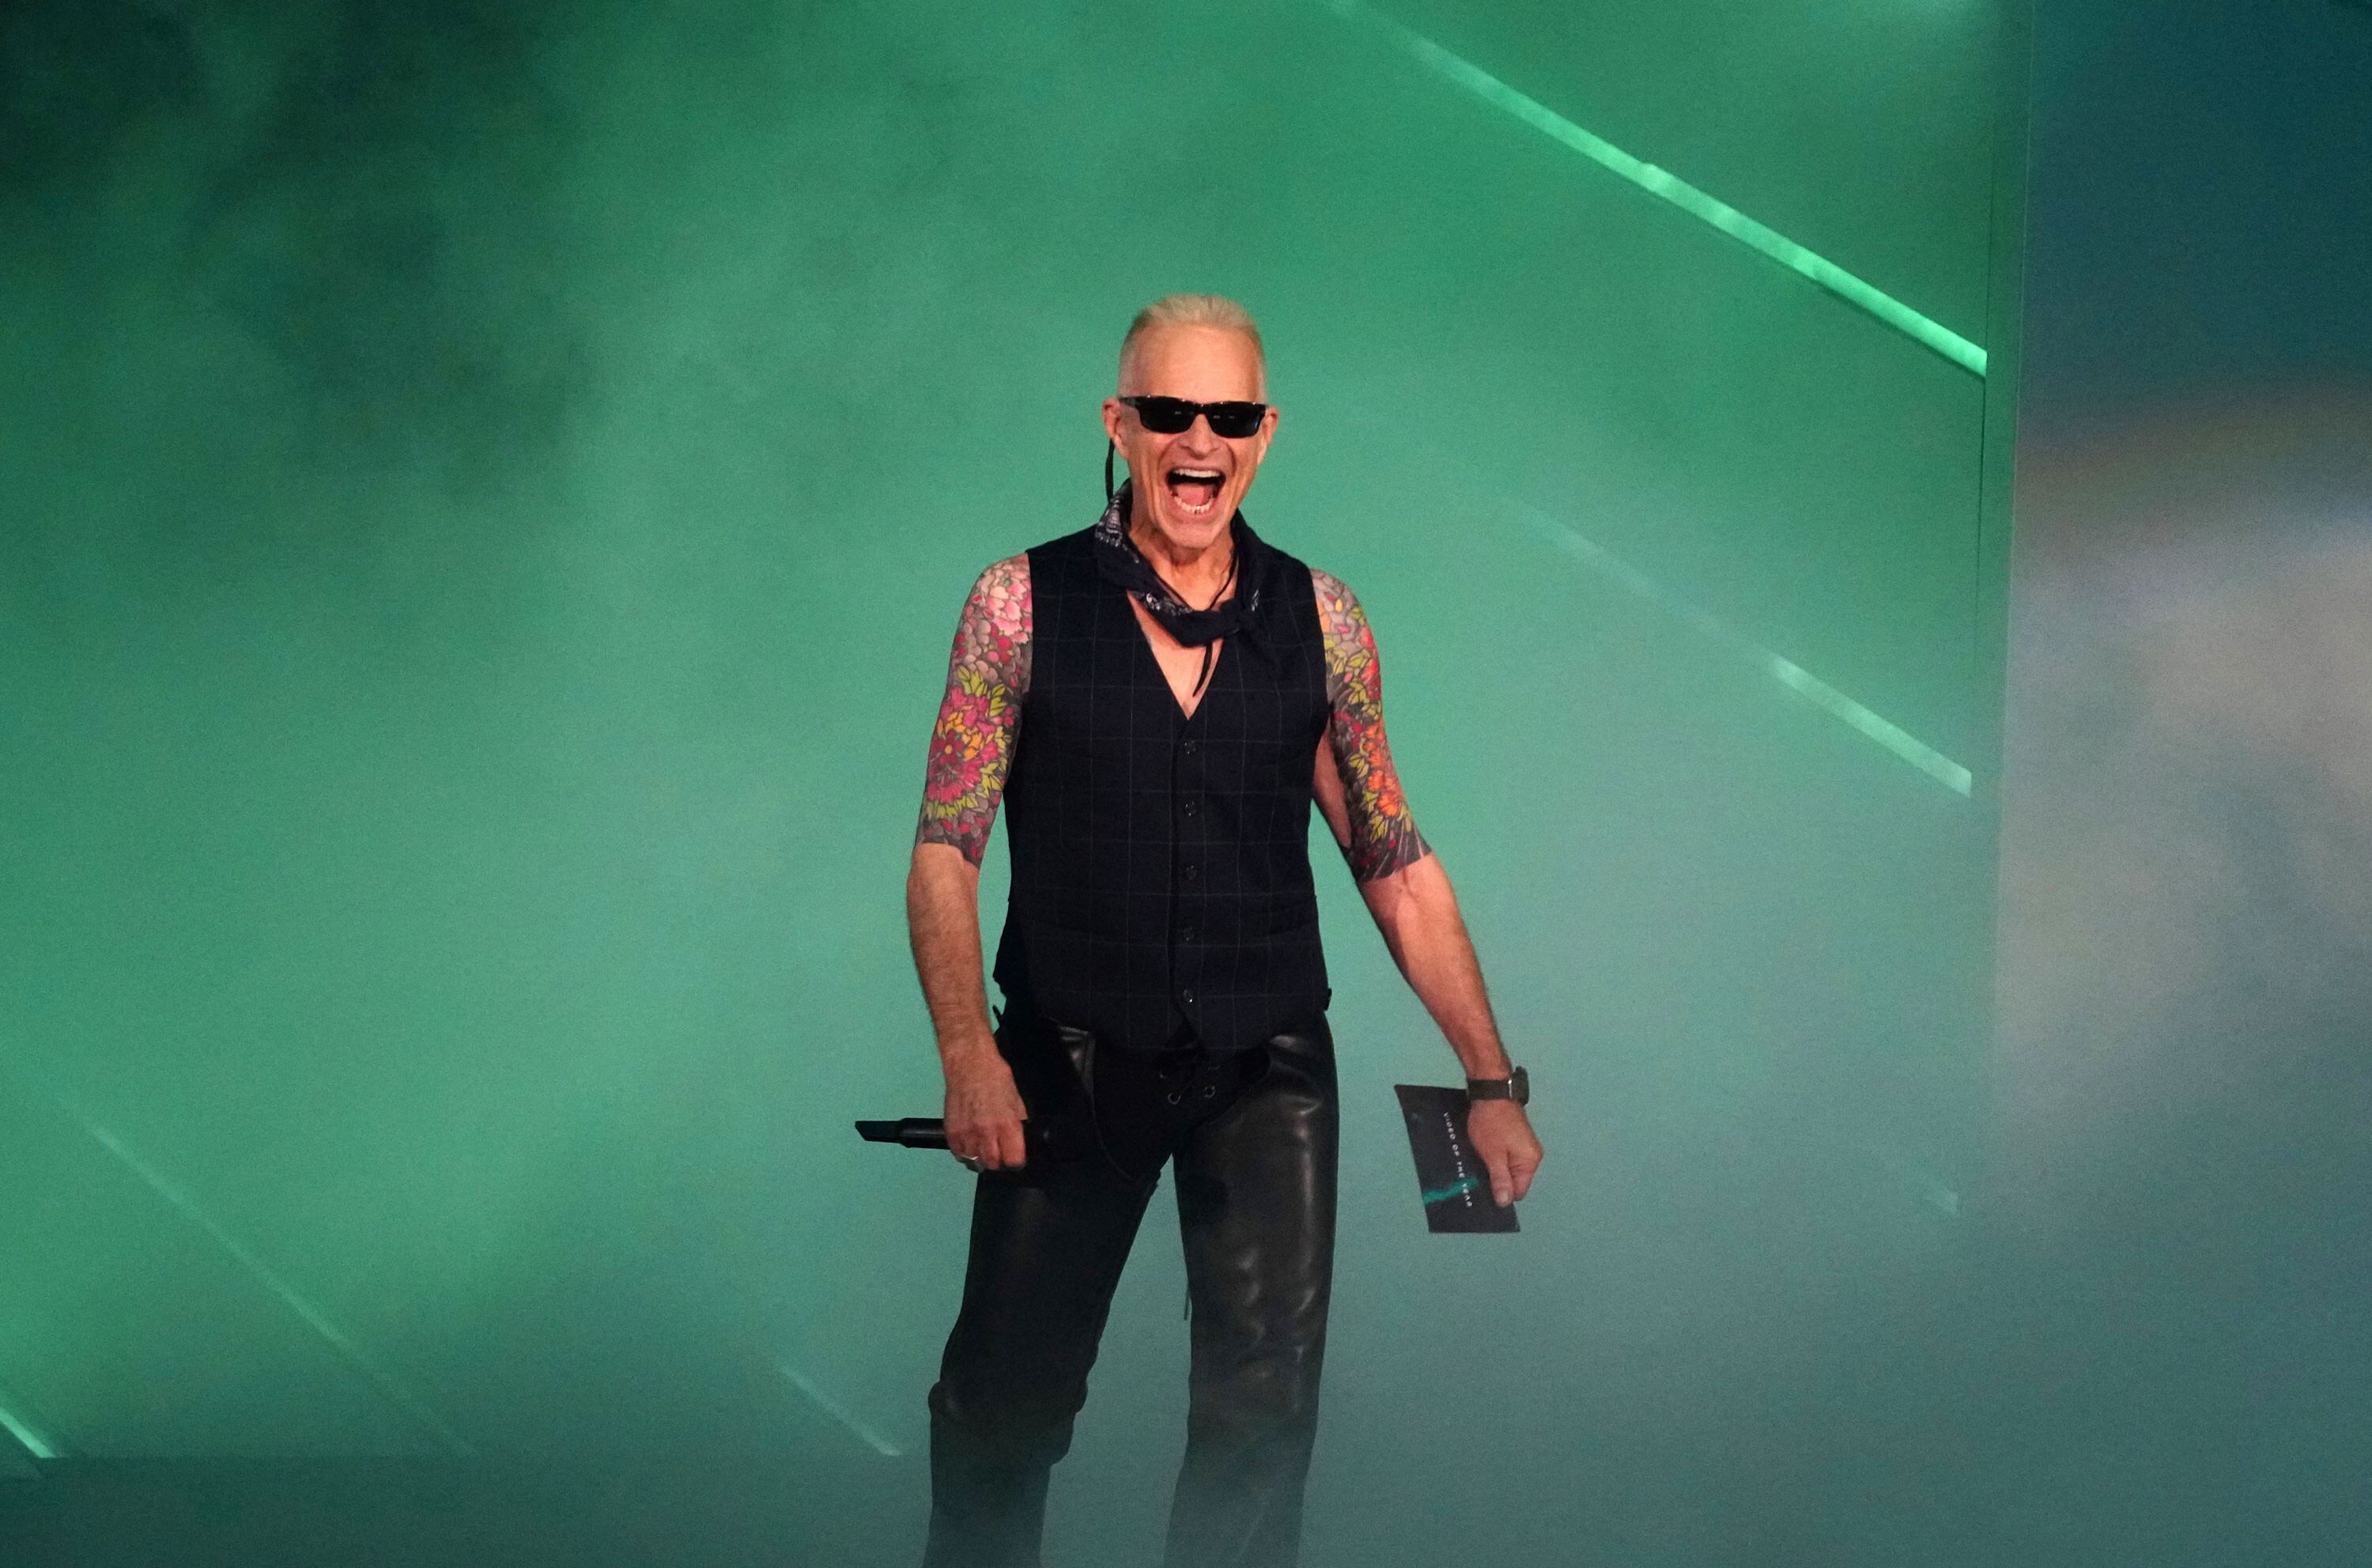 David Lee Roth has announced his retirement